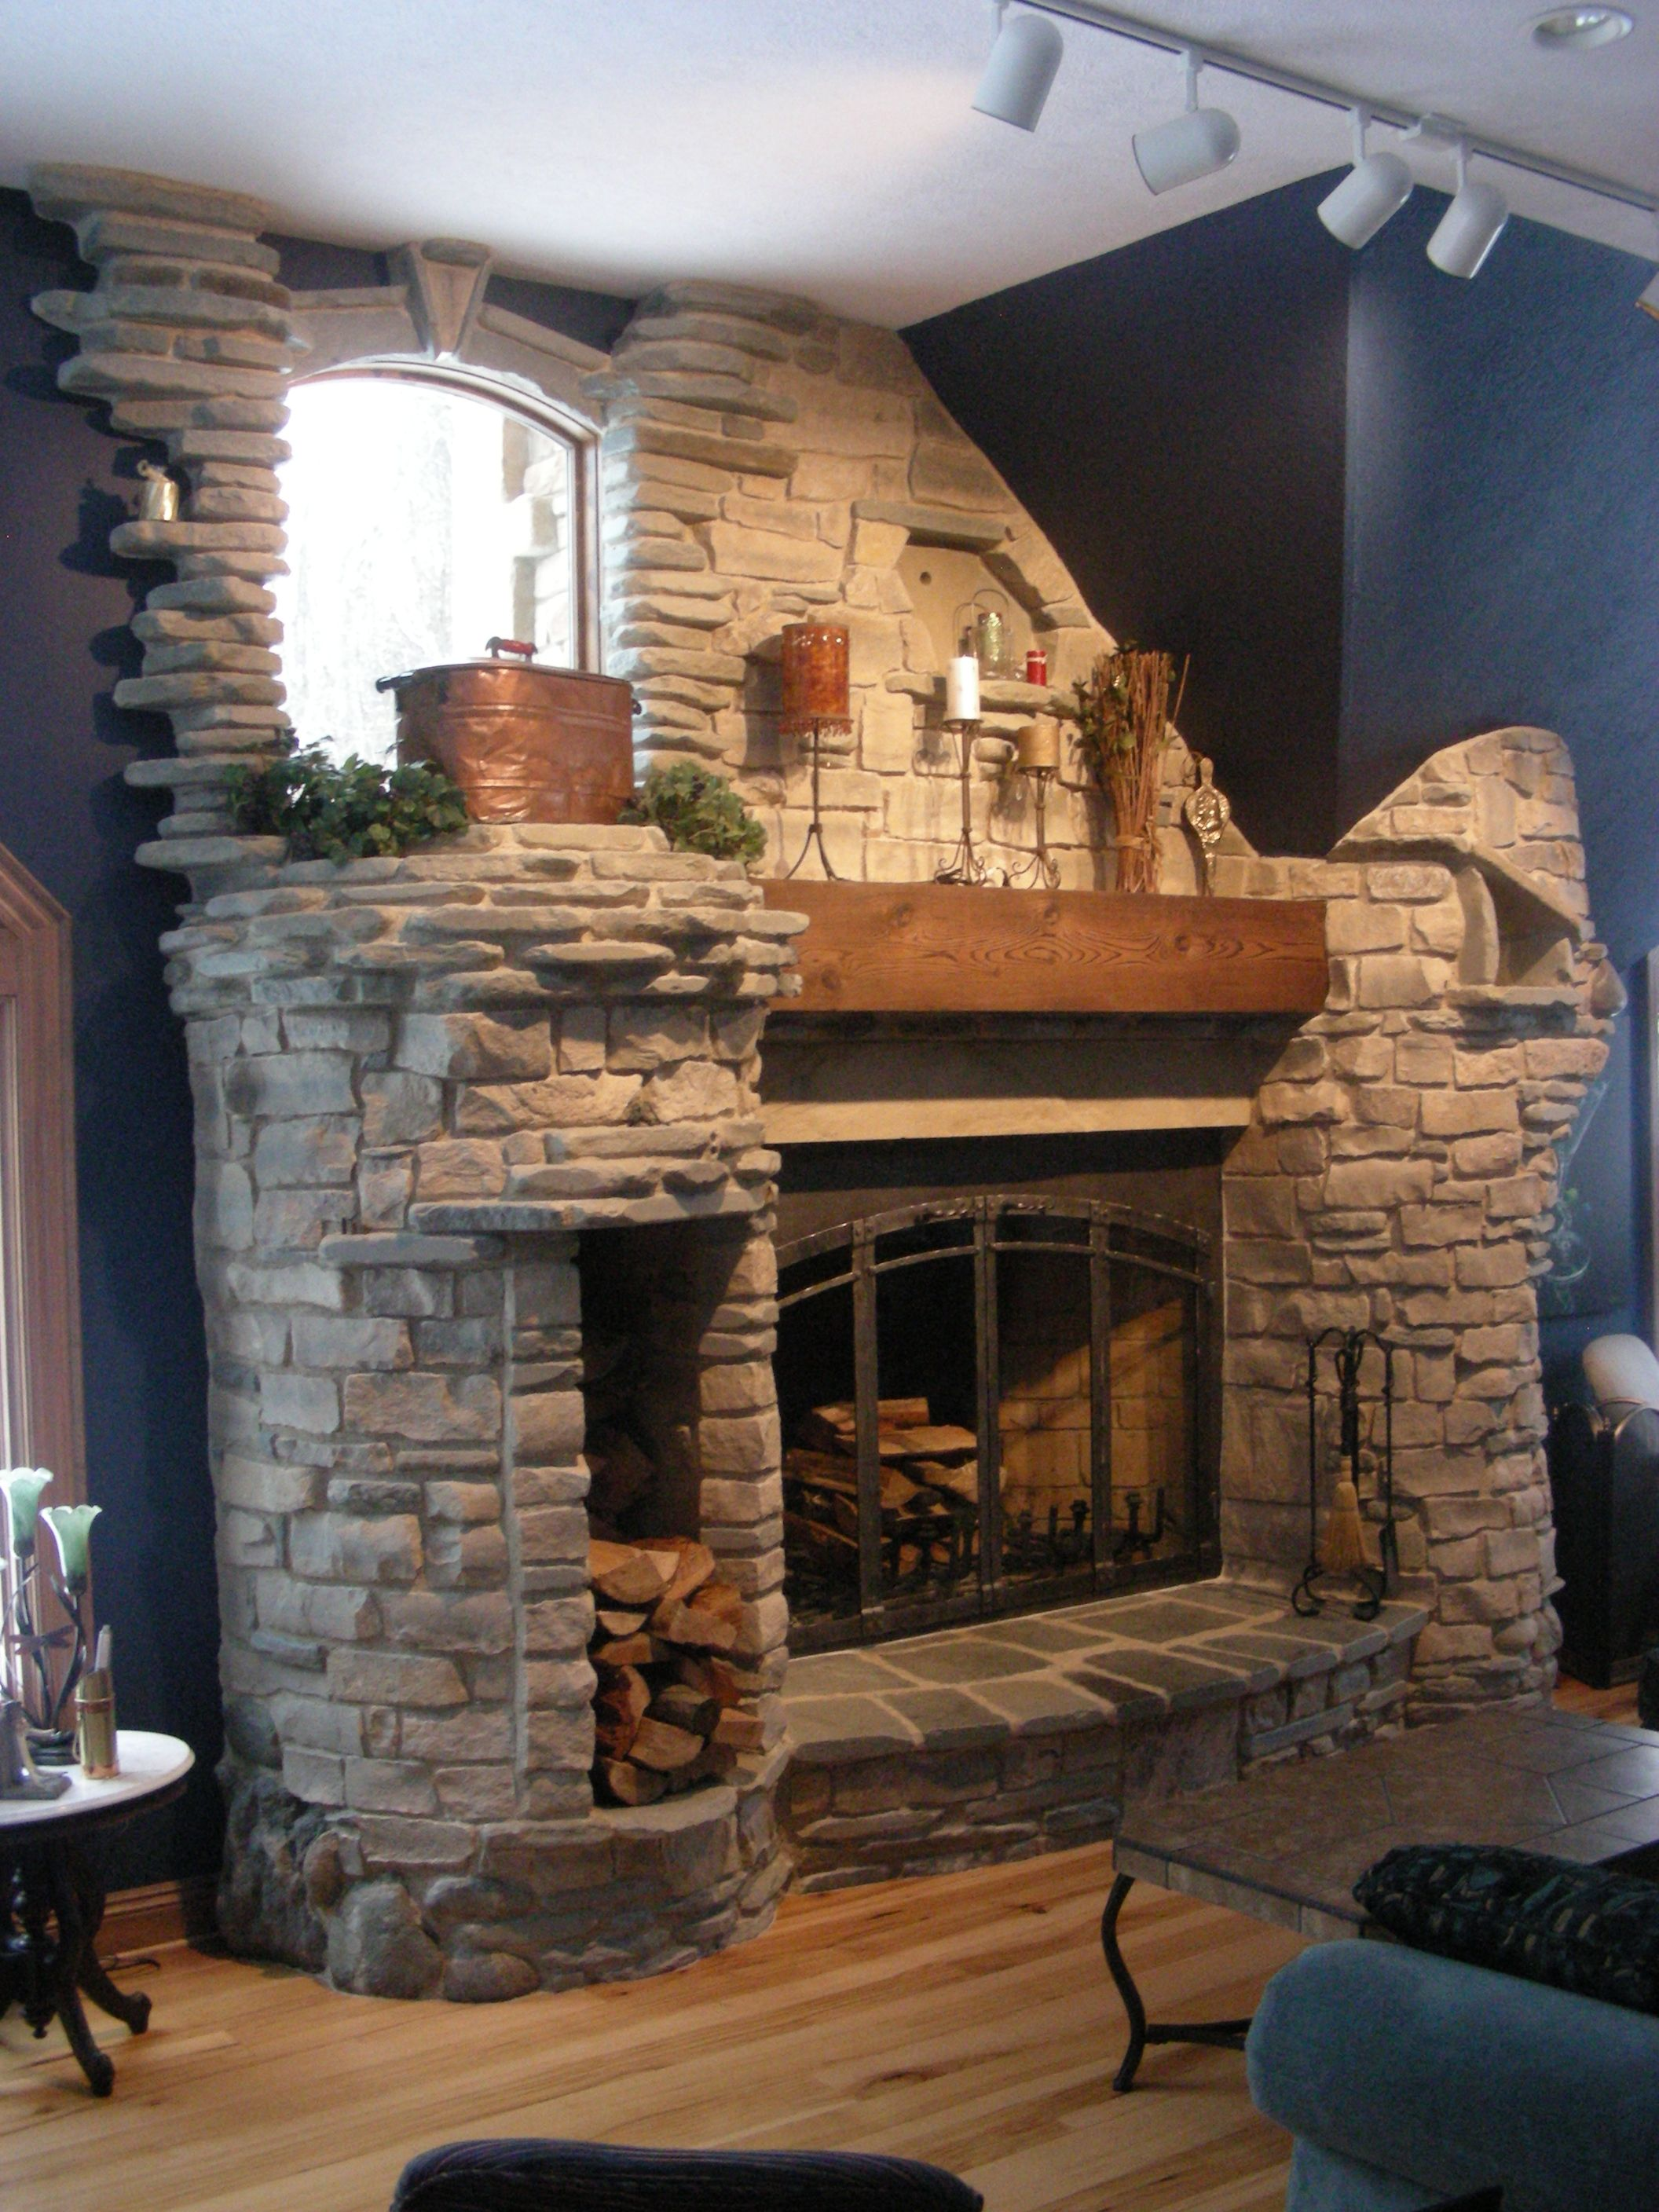 Inc. | Spectacular Fireplaces | Pinterest | Fireplace pictures